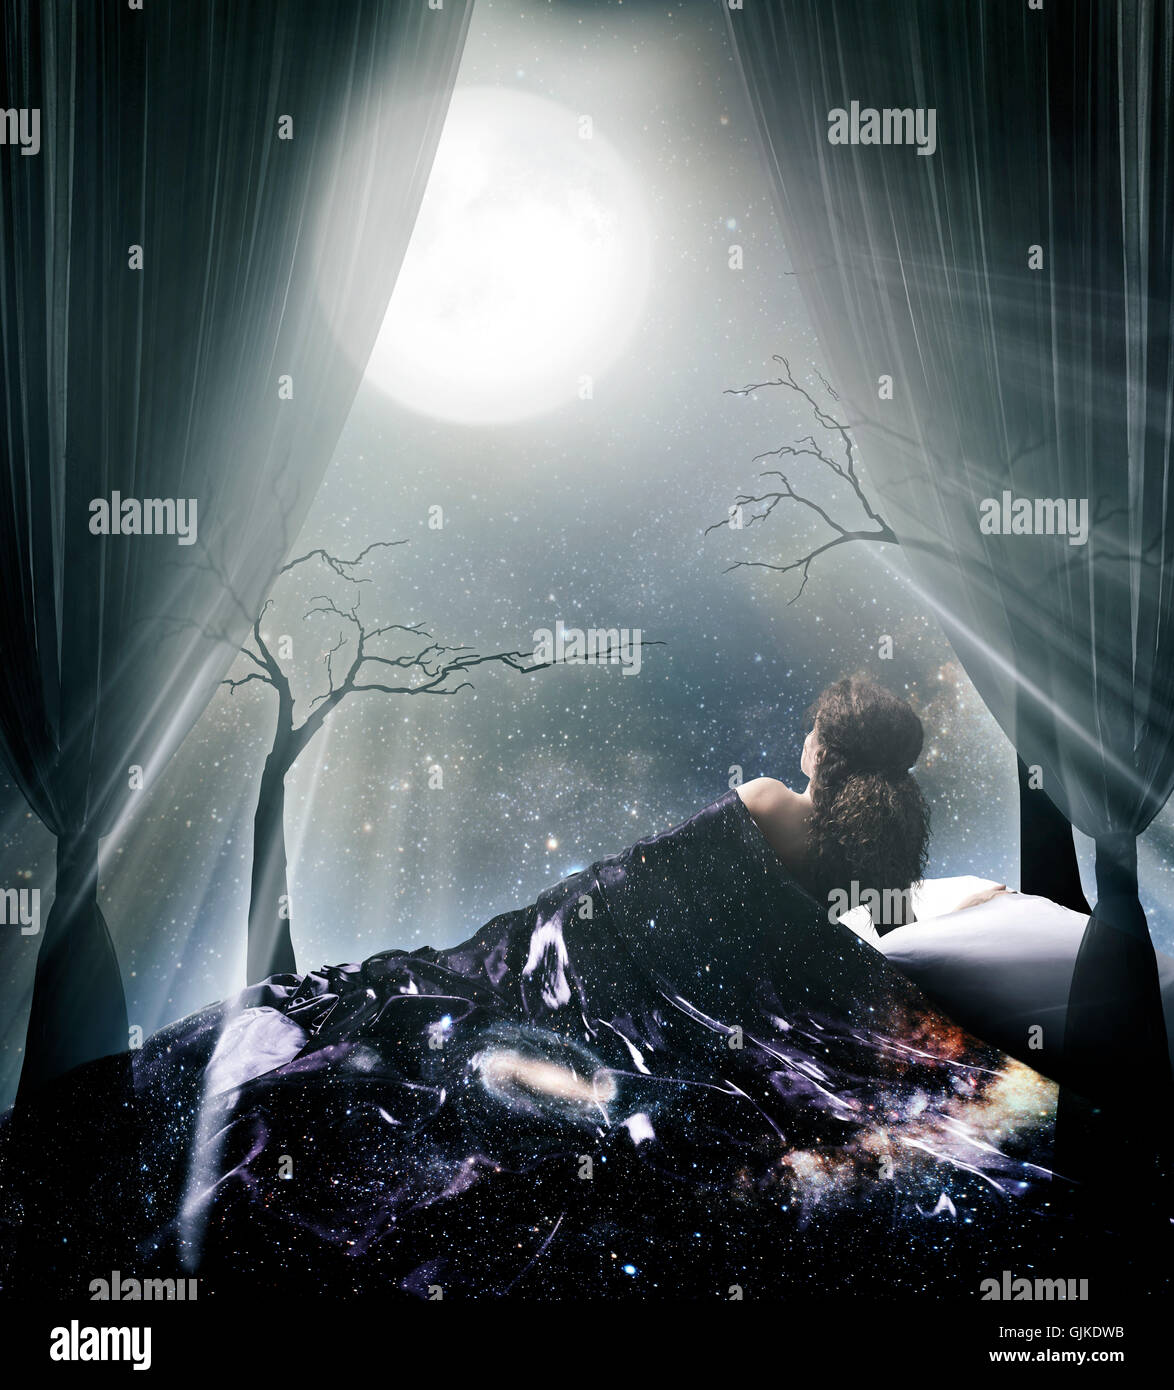 Lit by the moonlight woman lying in bed under the starry sky and the full moon artistic spiritual photo illustration - Stock Image